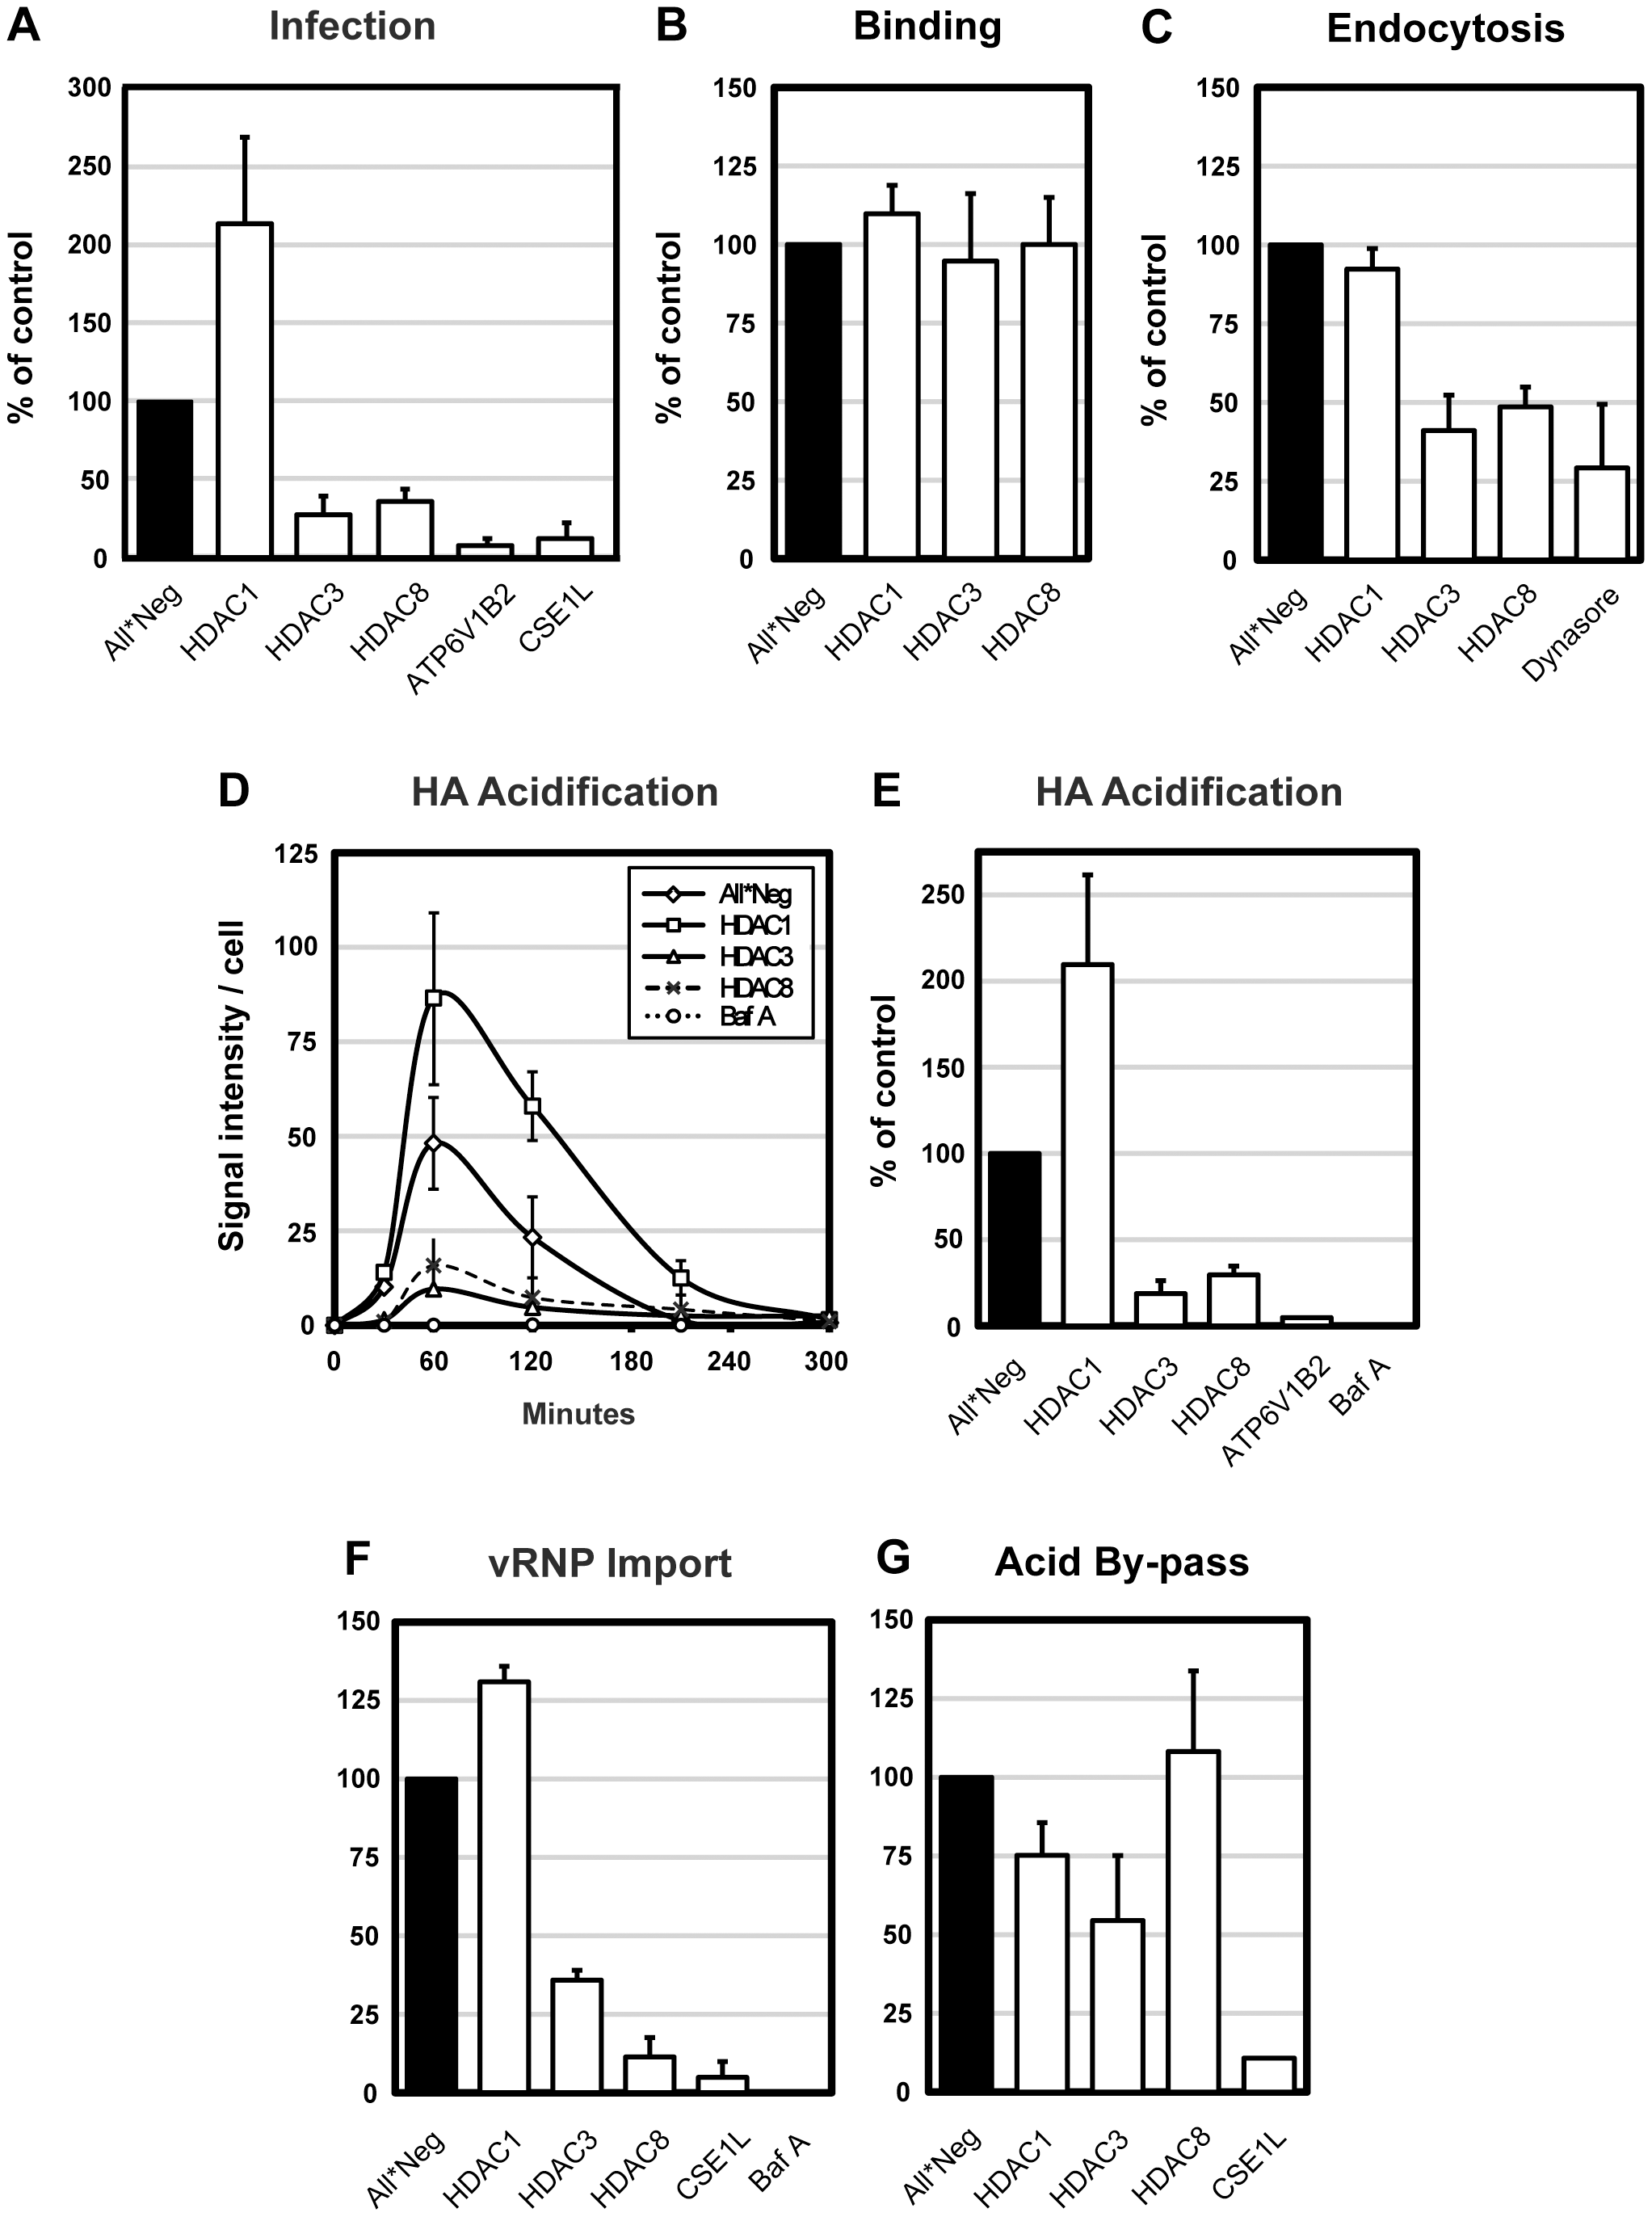 HDAC8 is required for IAV X31 infection, endocytosis and HA acidification.